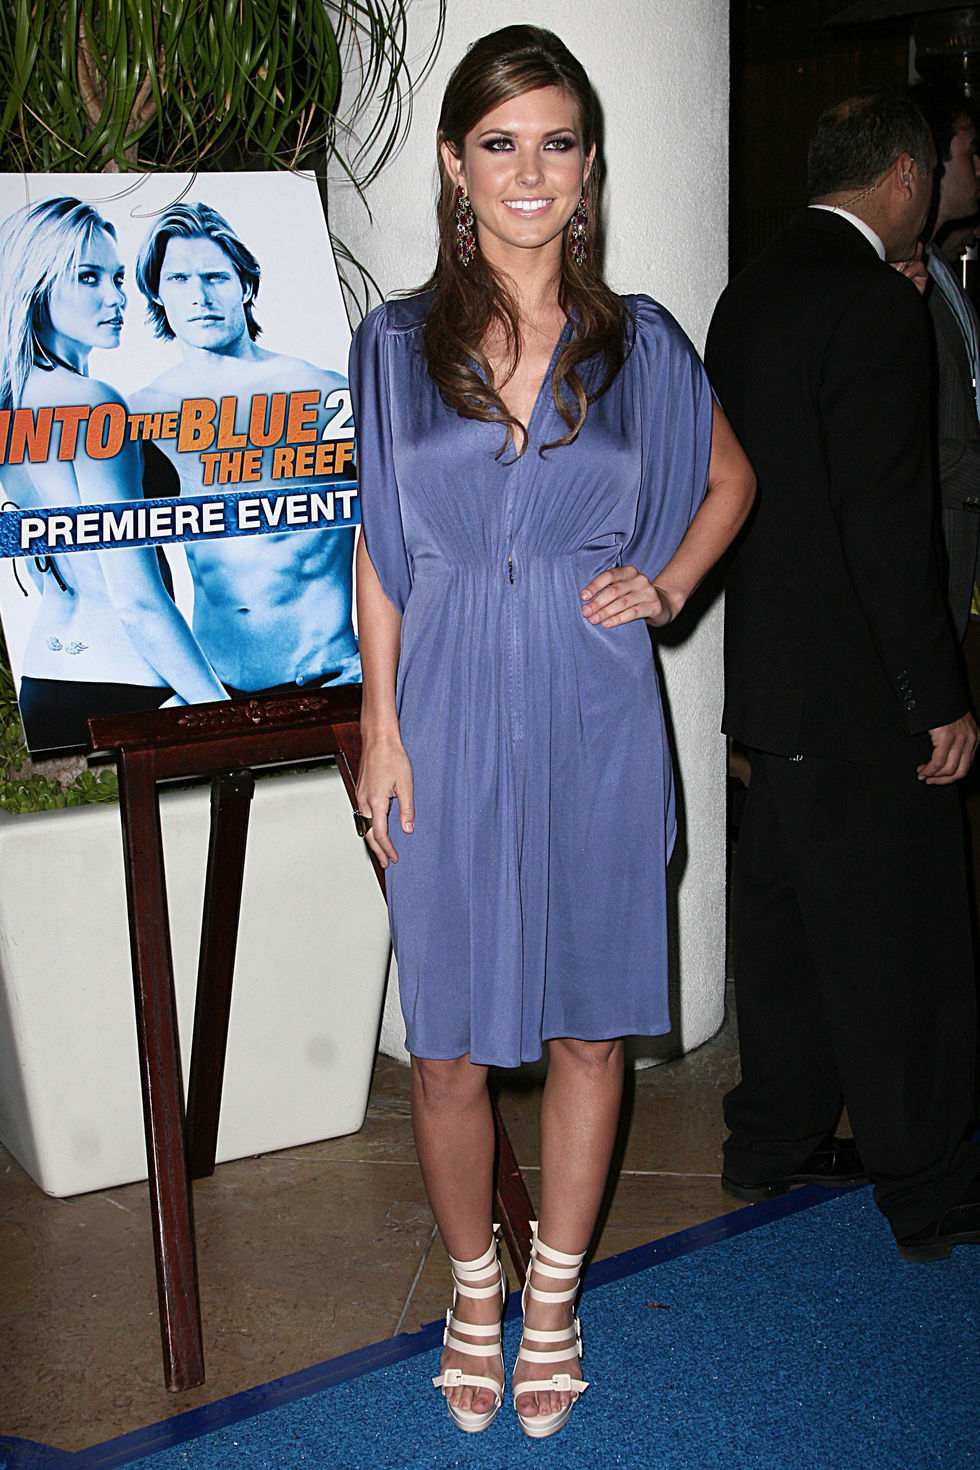 audrina-patridge-into-the-blue-2-the-reef-premiere-in-beverly-hills-13